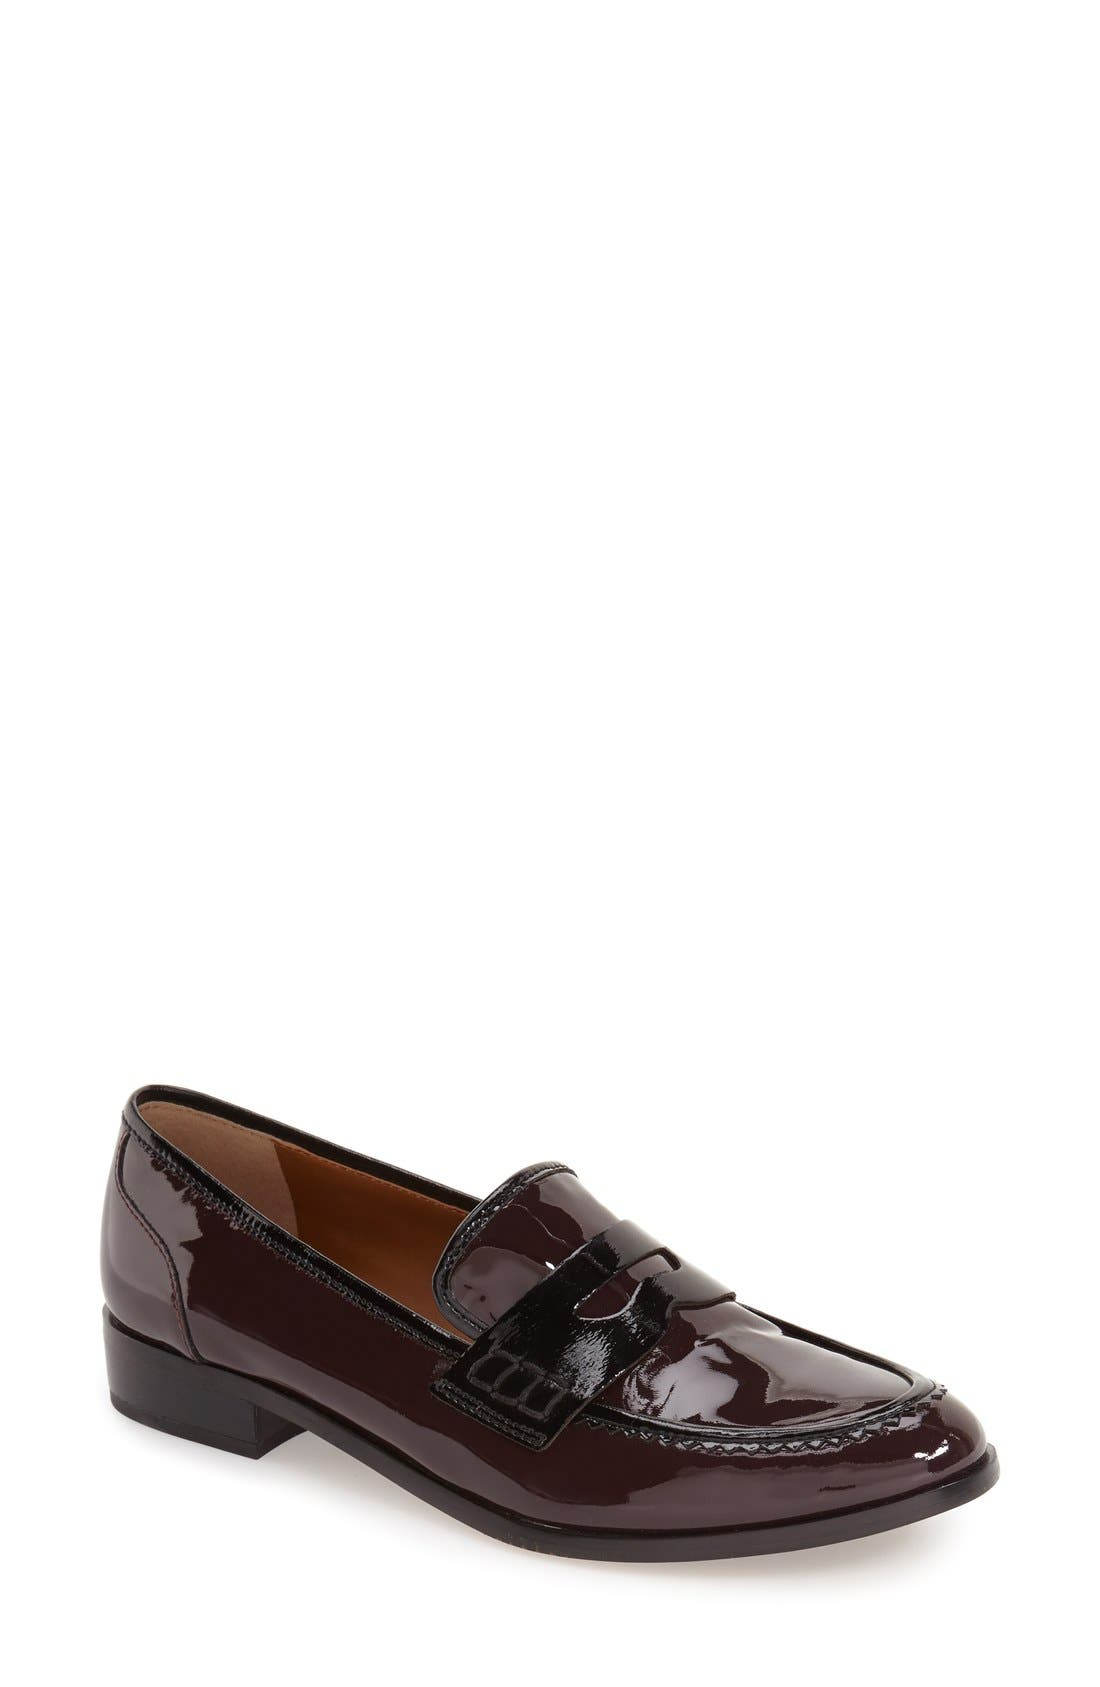 'Jolette' Penny Loafer,                             Main thumbnail 26, color,